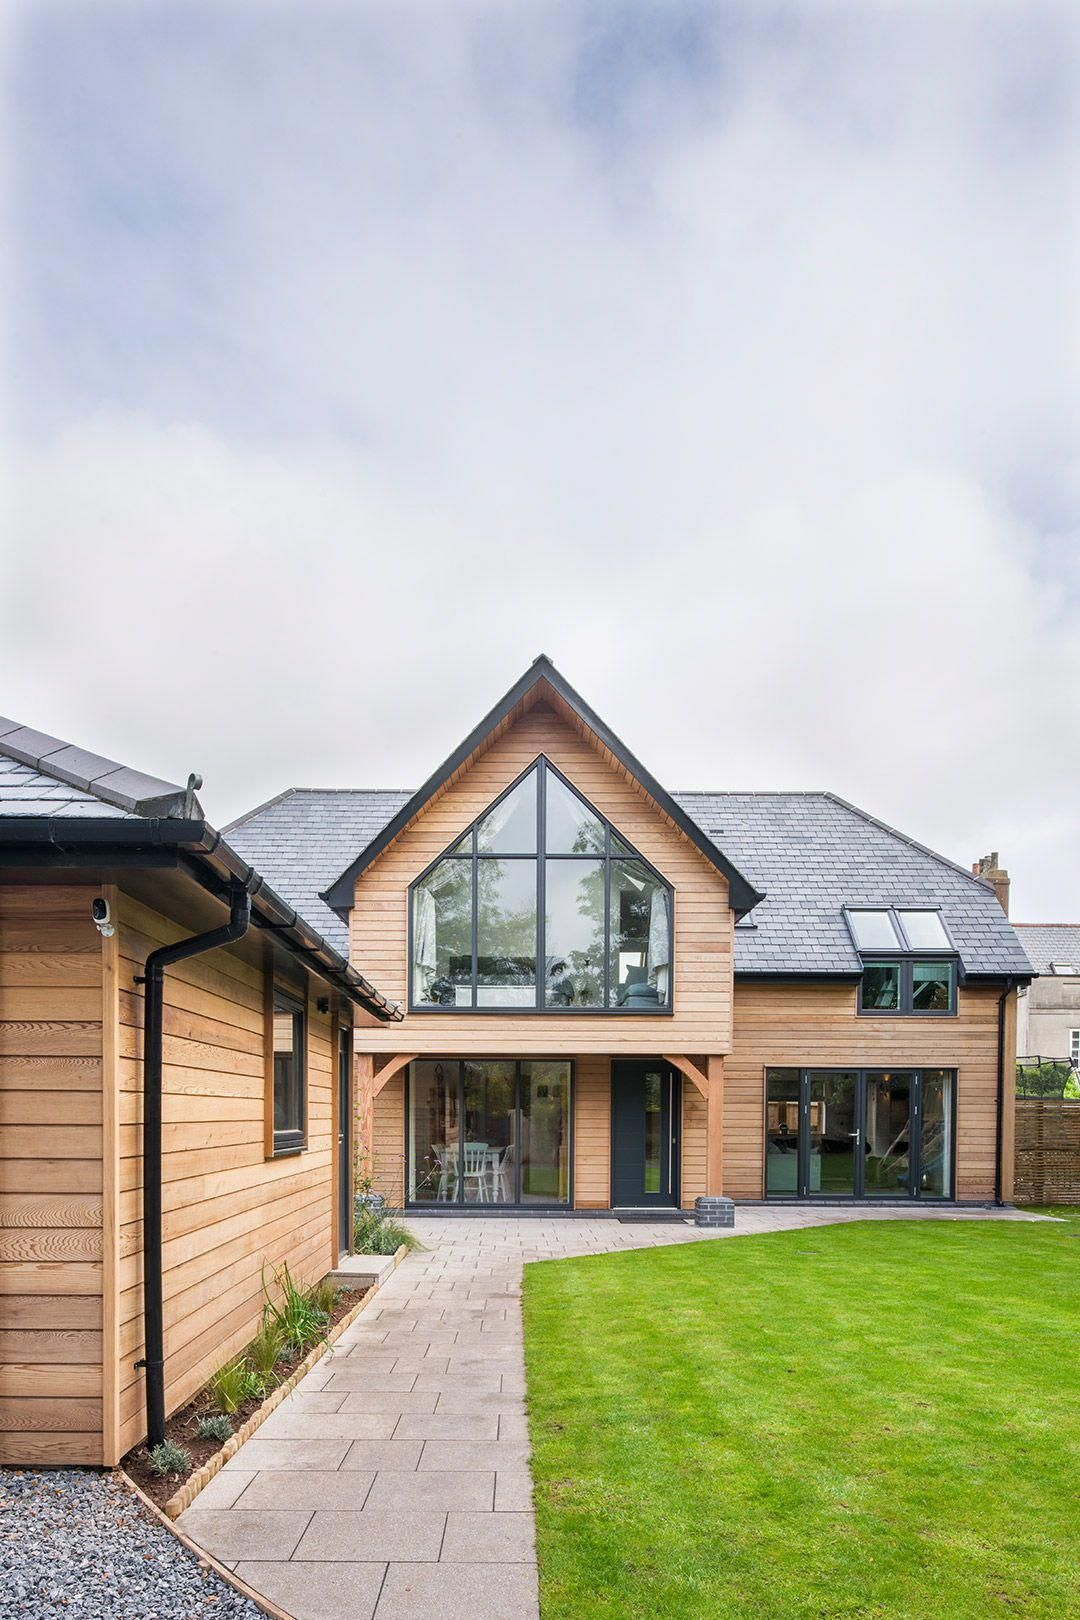 Budget Build This House Was Built For 300k With Potton Self Build Homes Modern House Built W Contemporary House Exterior House Exterior Home Building Design